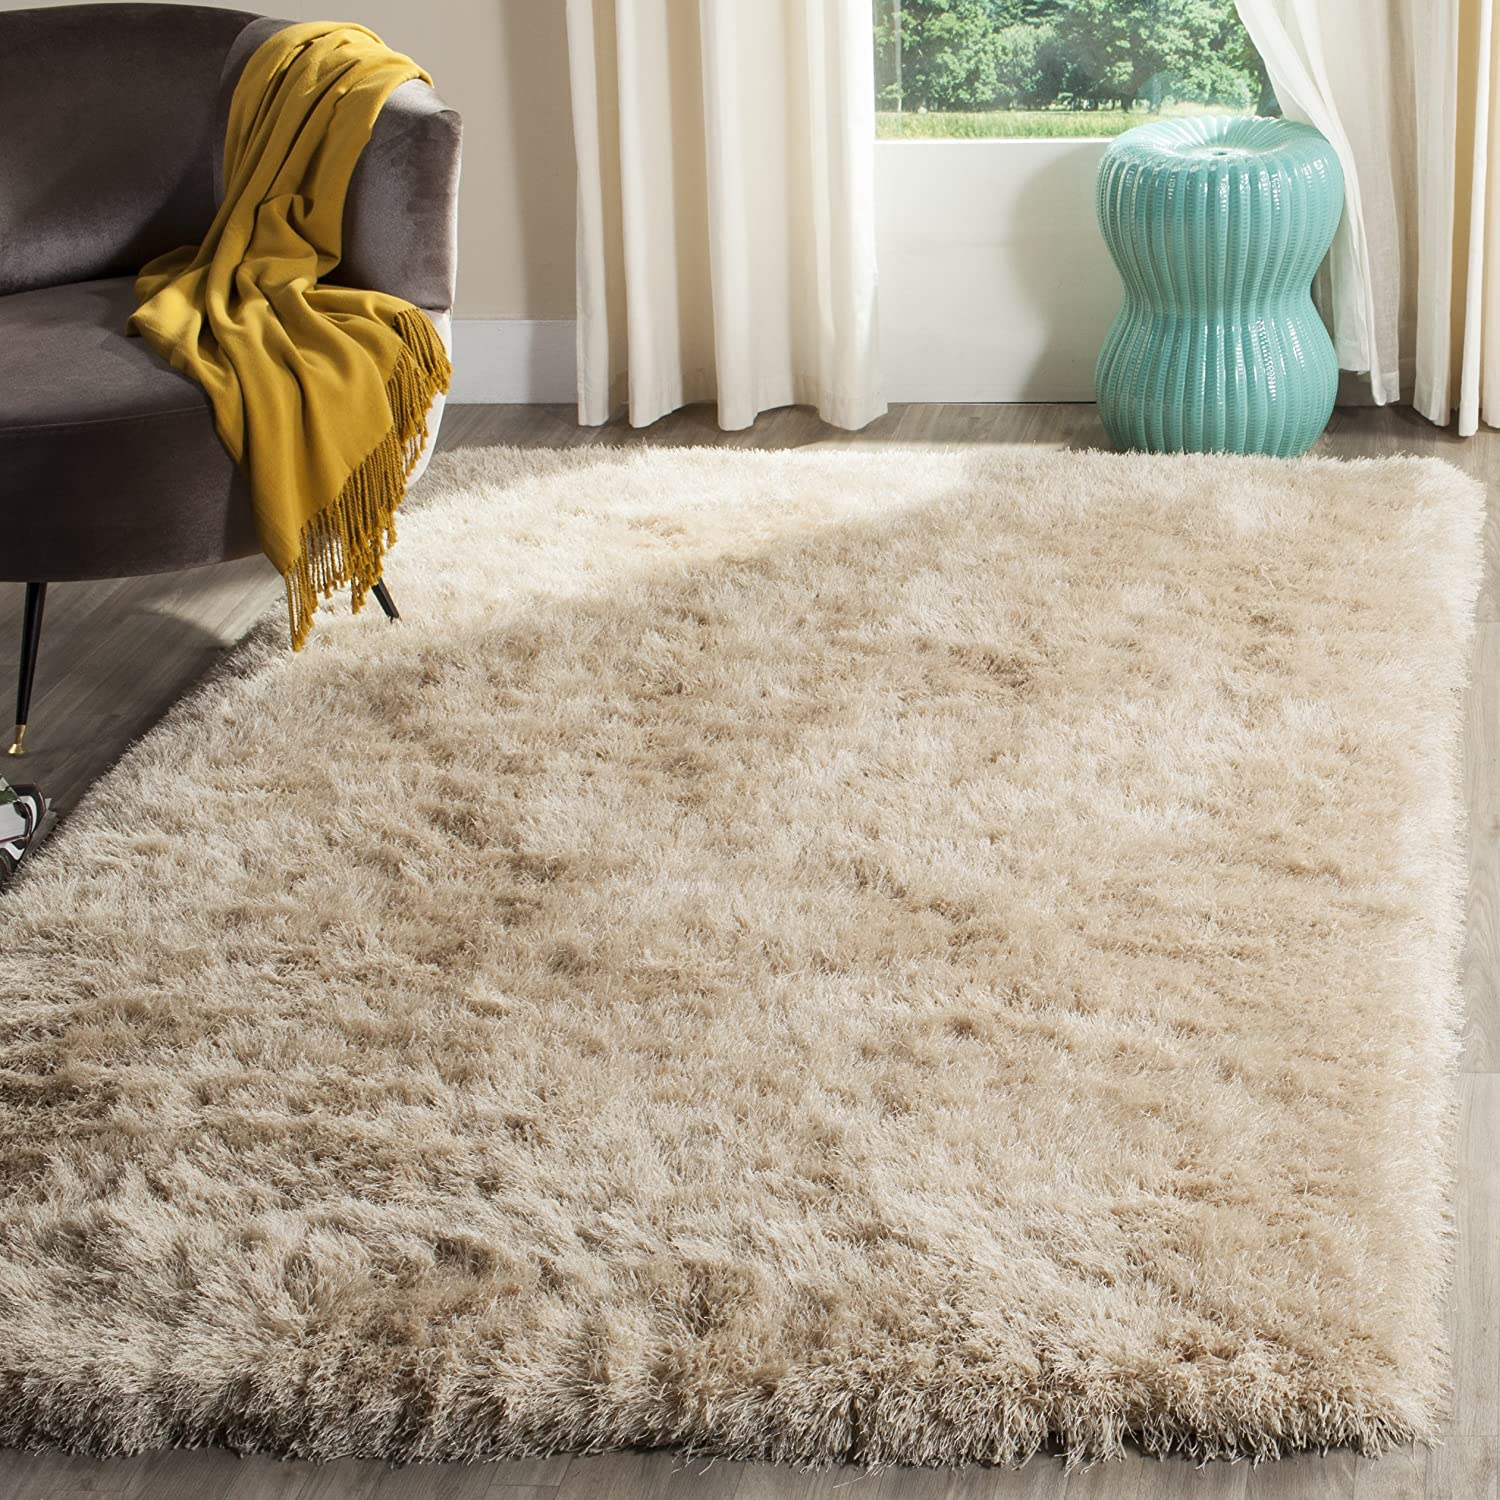 rugs brown beautiful floral contemporary shag handmade wool modern area rug